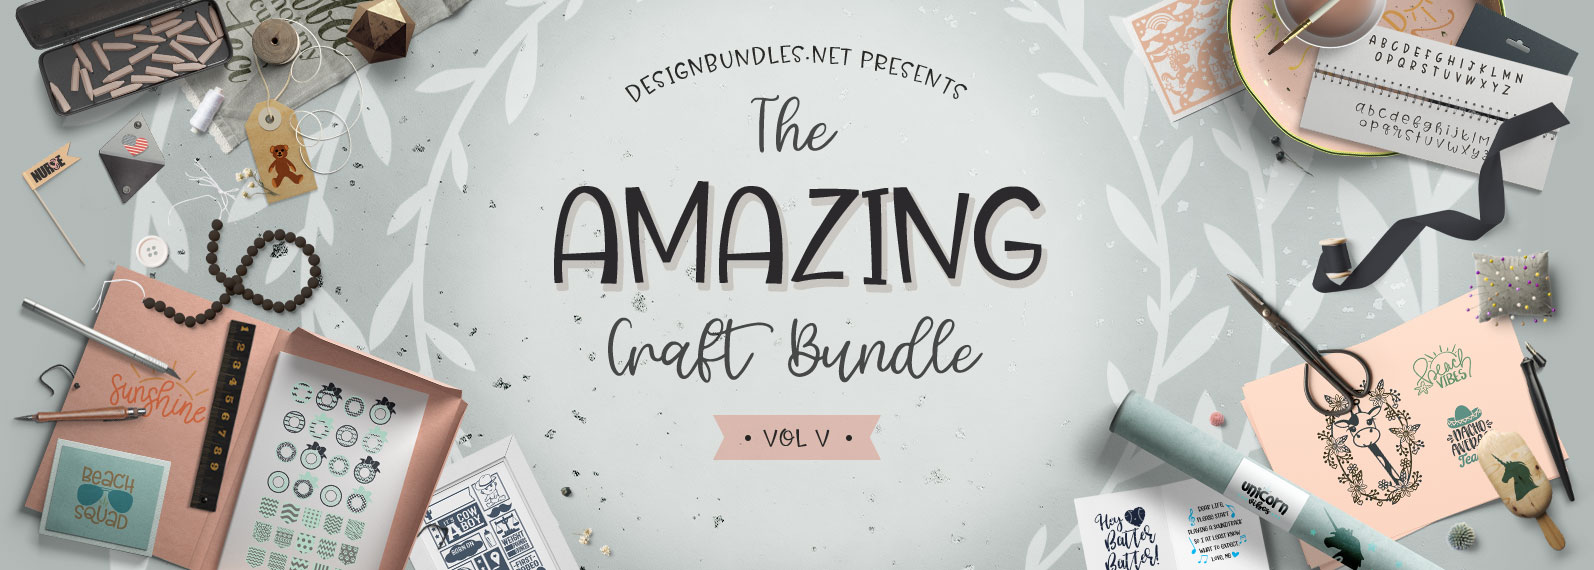 The Amazing Craft Bundle V Cover